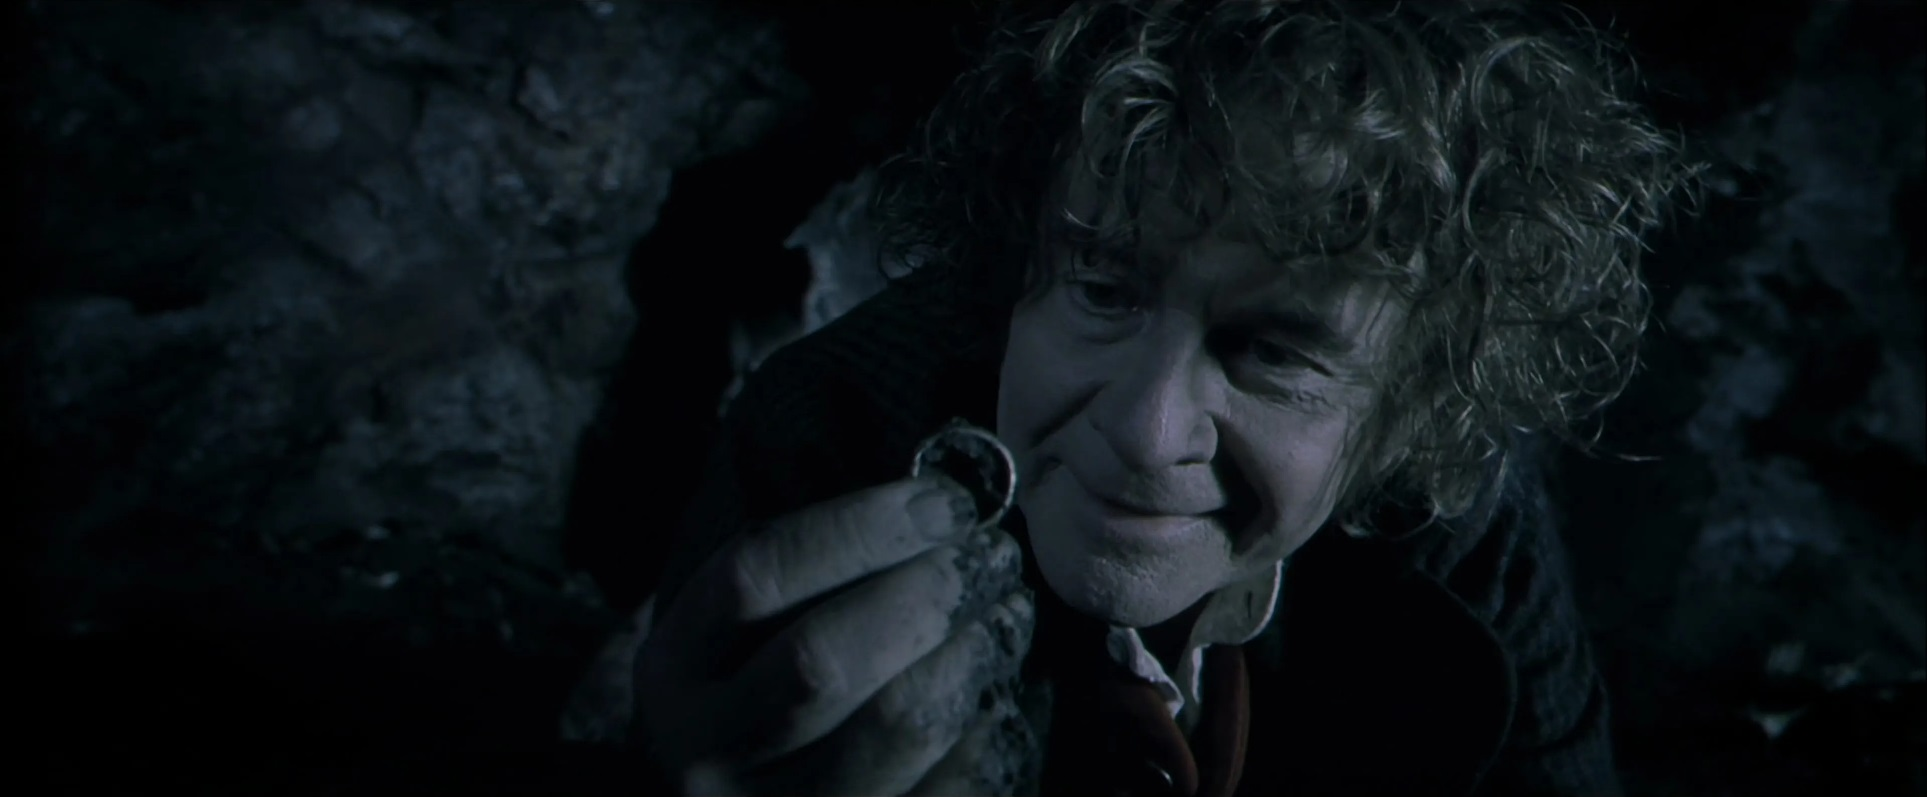 File:Bilbo-finds-ring.JPG